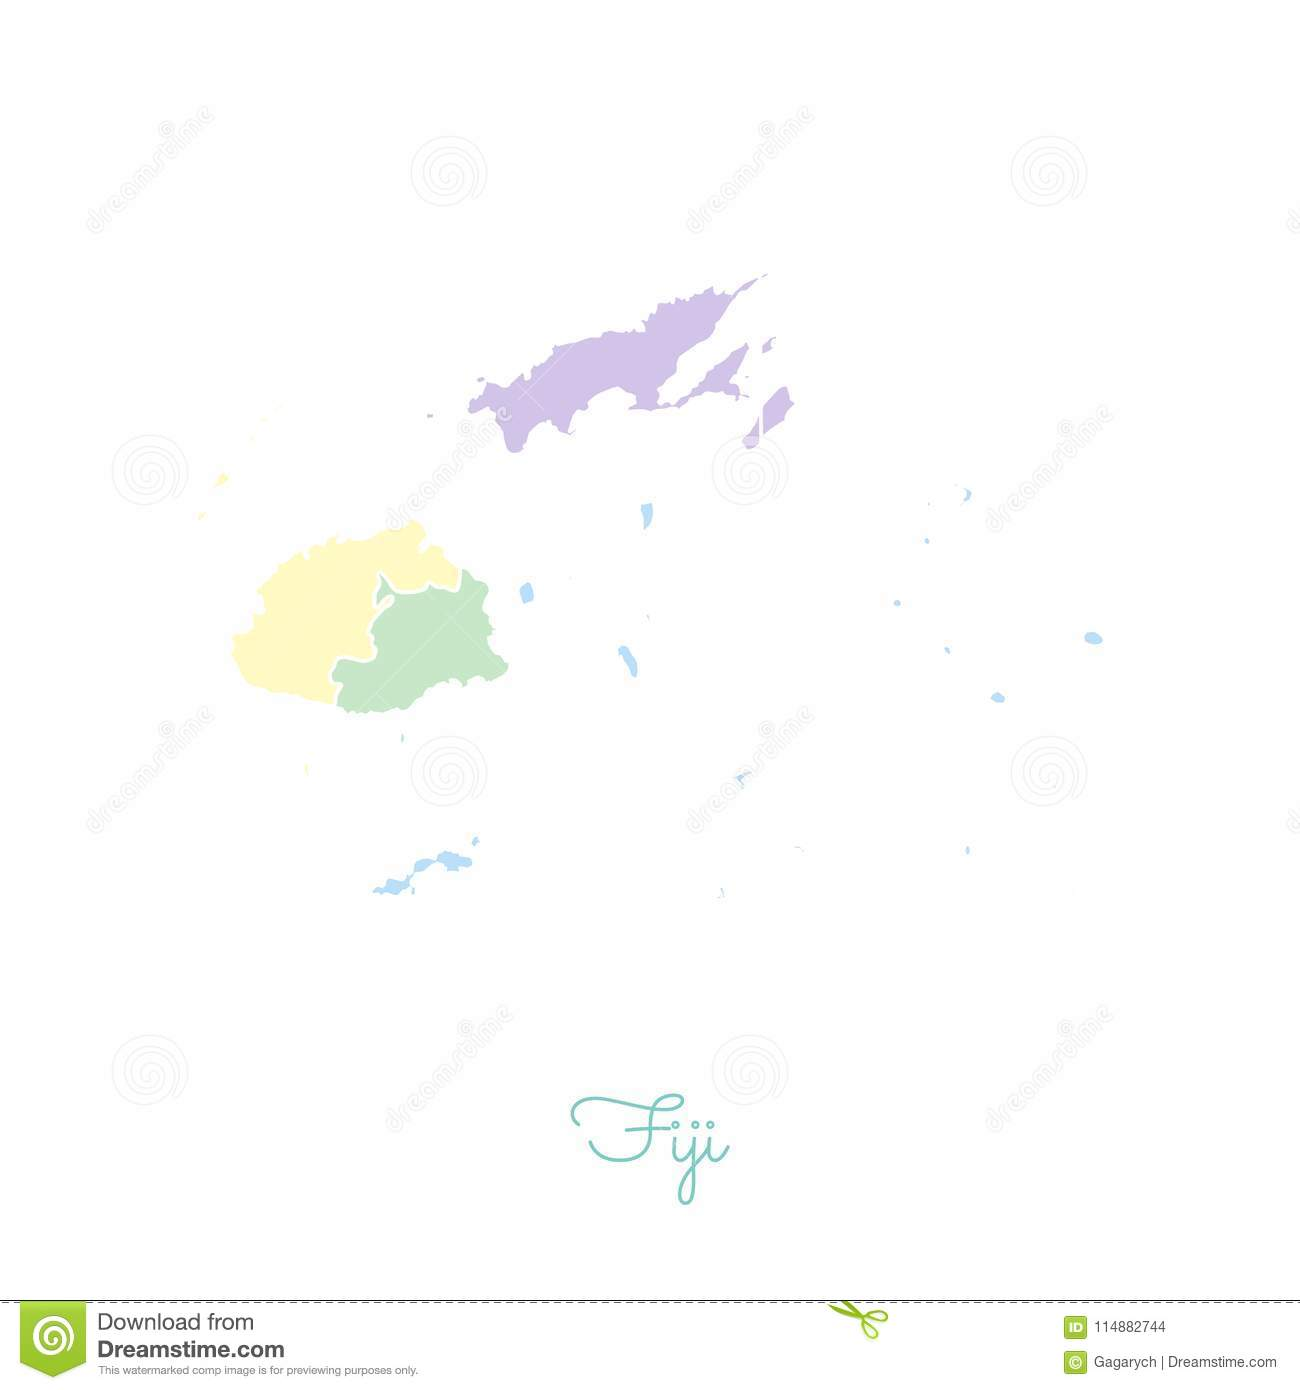 Fiji Region Map Fiji Region Map: Colorful With White Outline. Stock Vector